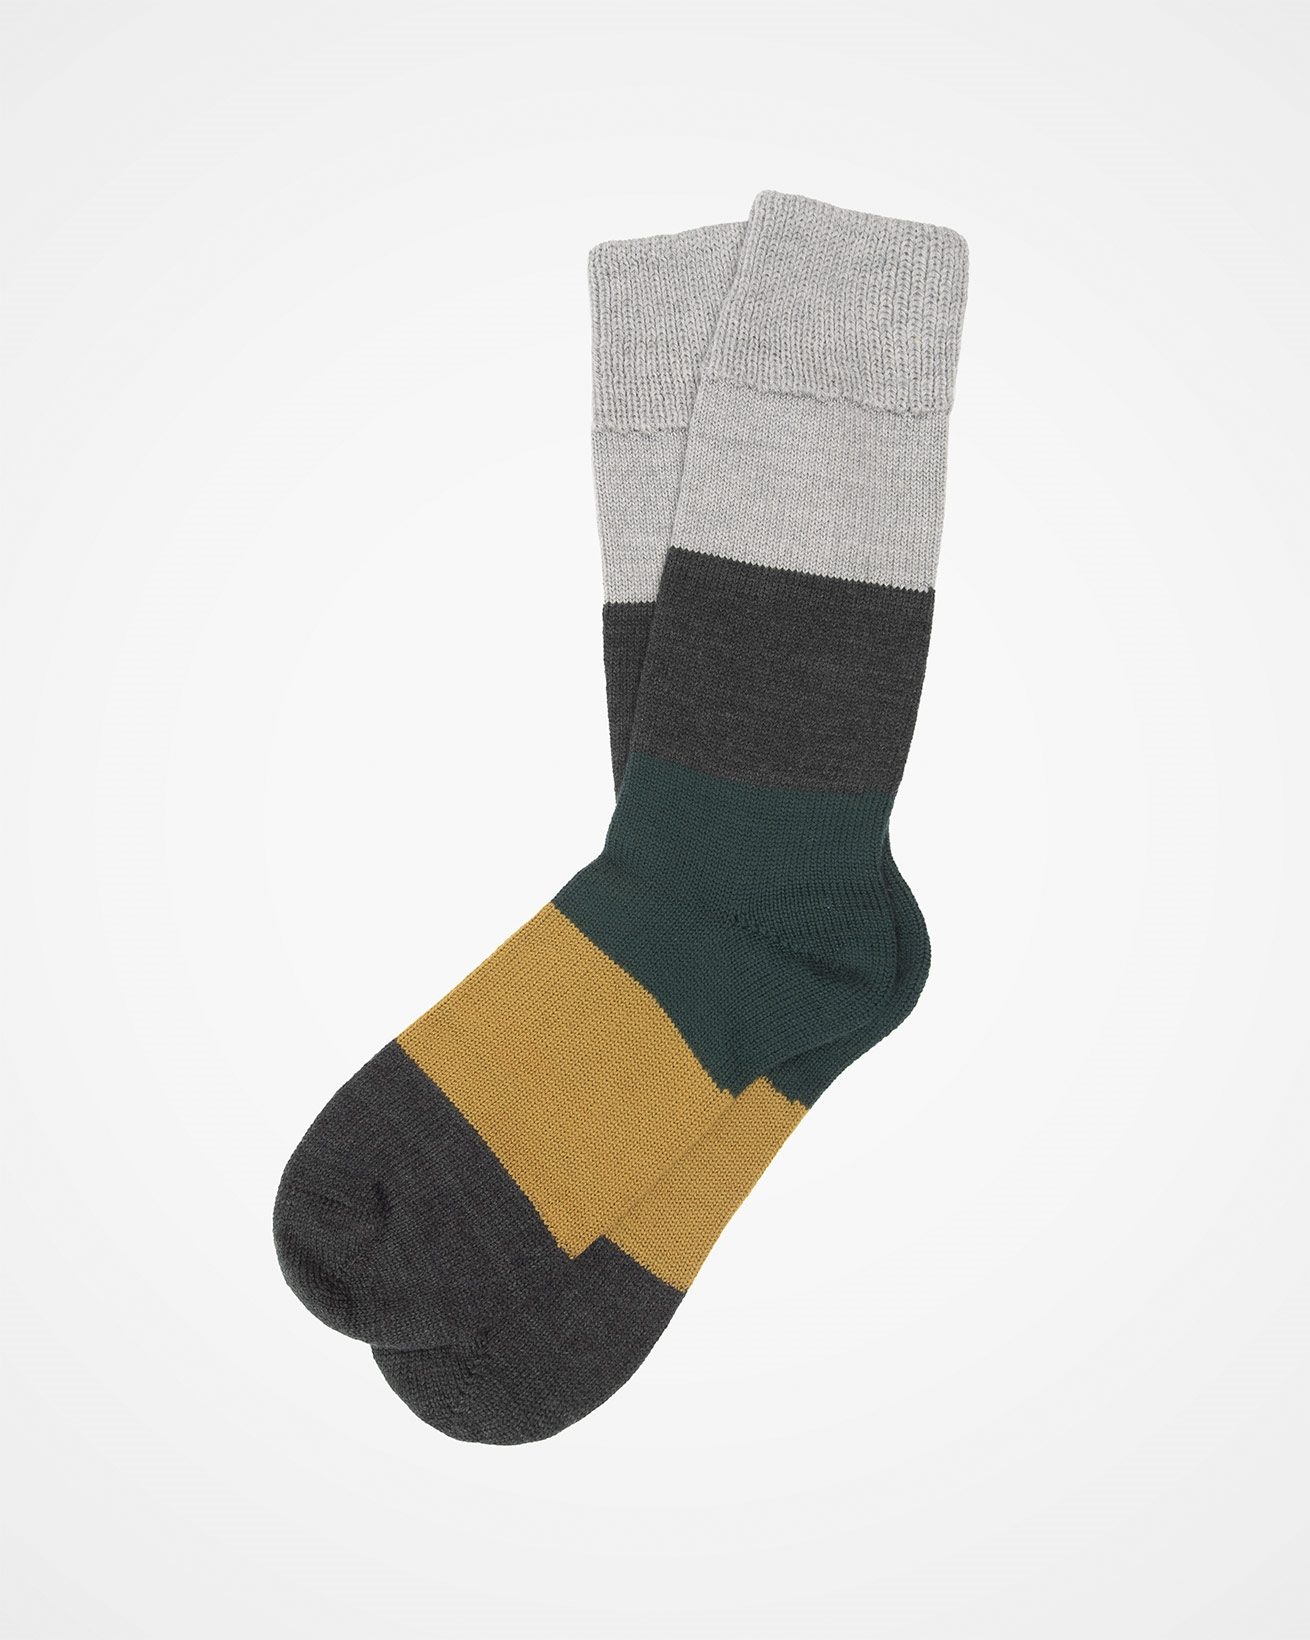 7760_mens-merino-cotton-colourblock-socks_silver-grey_flat.jpg